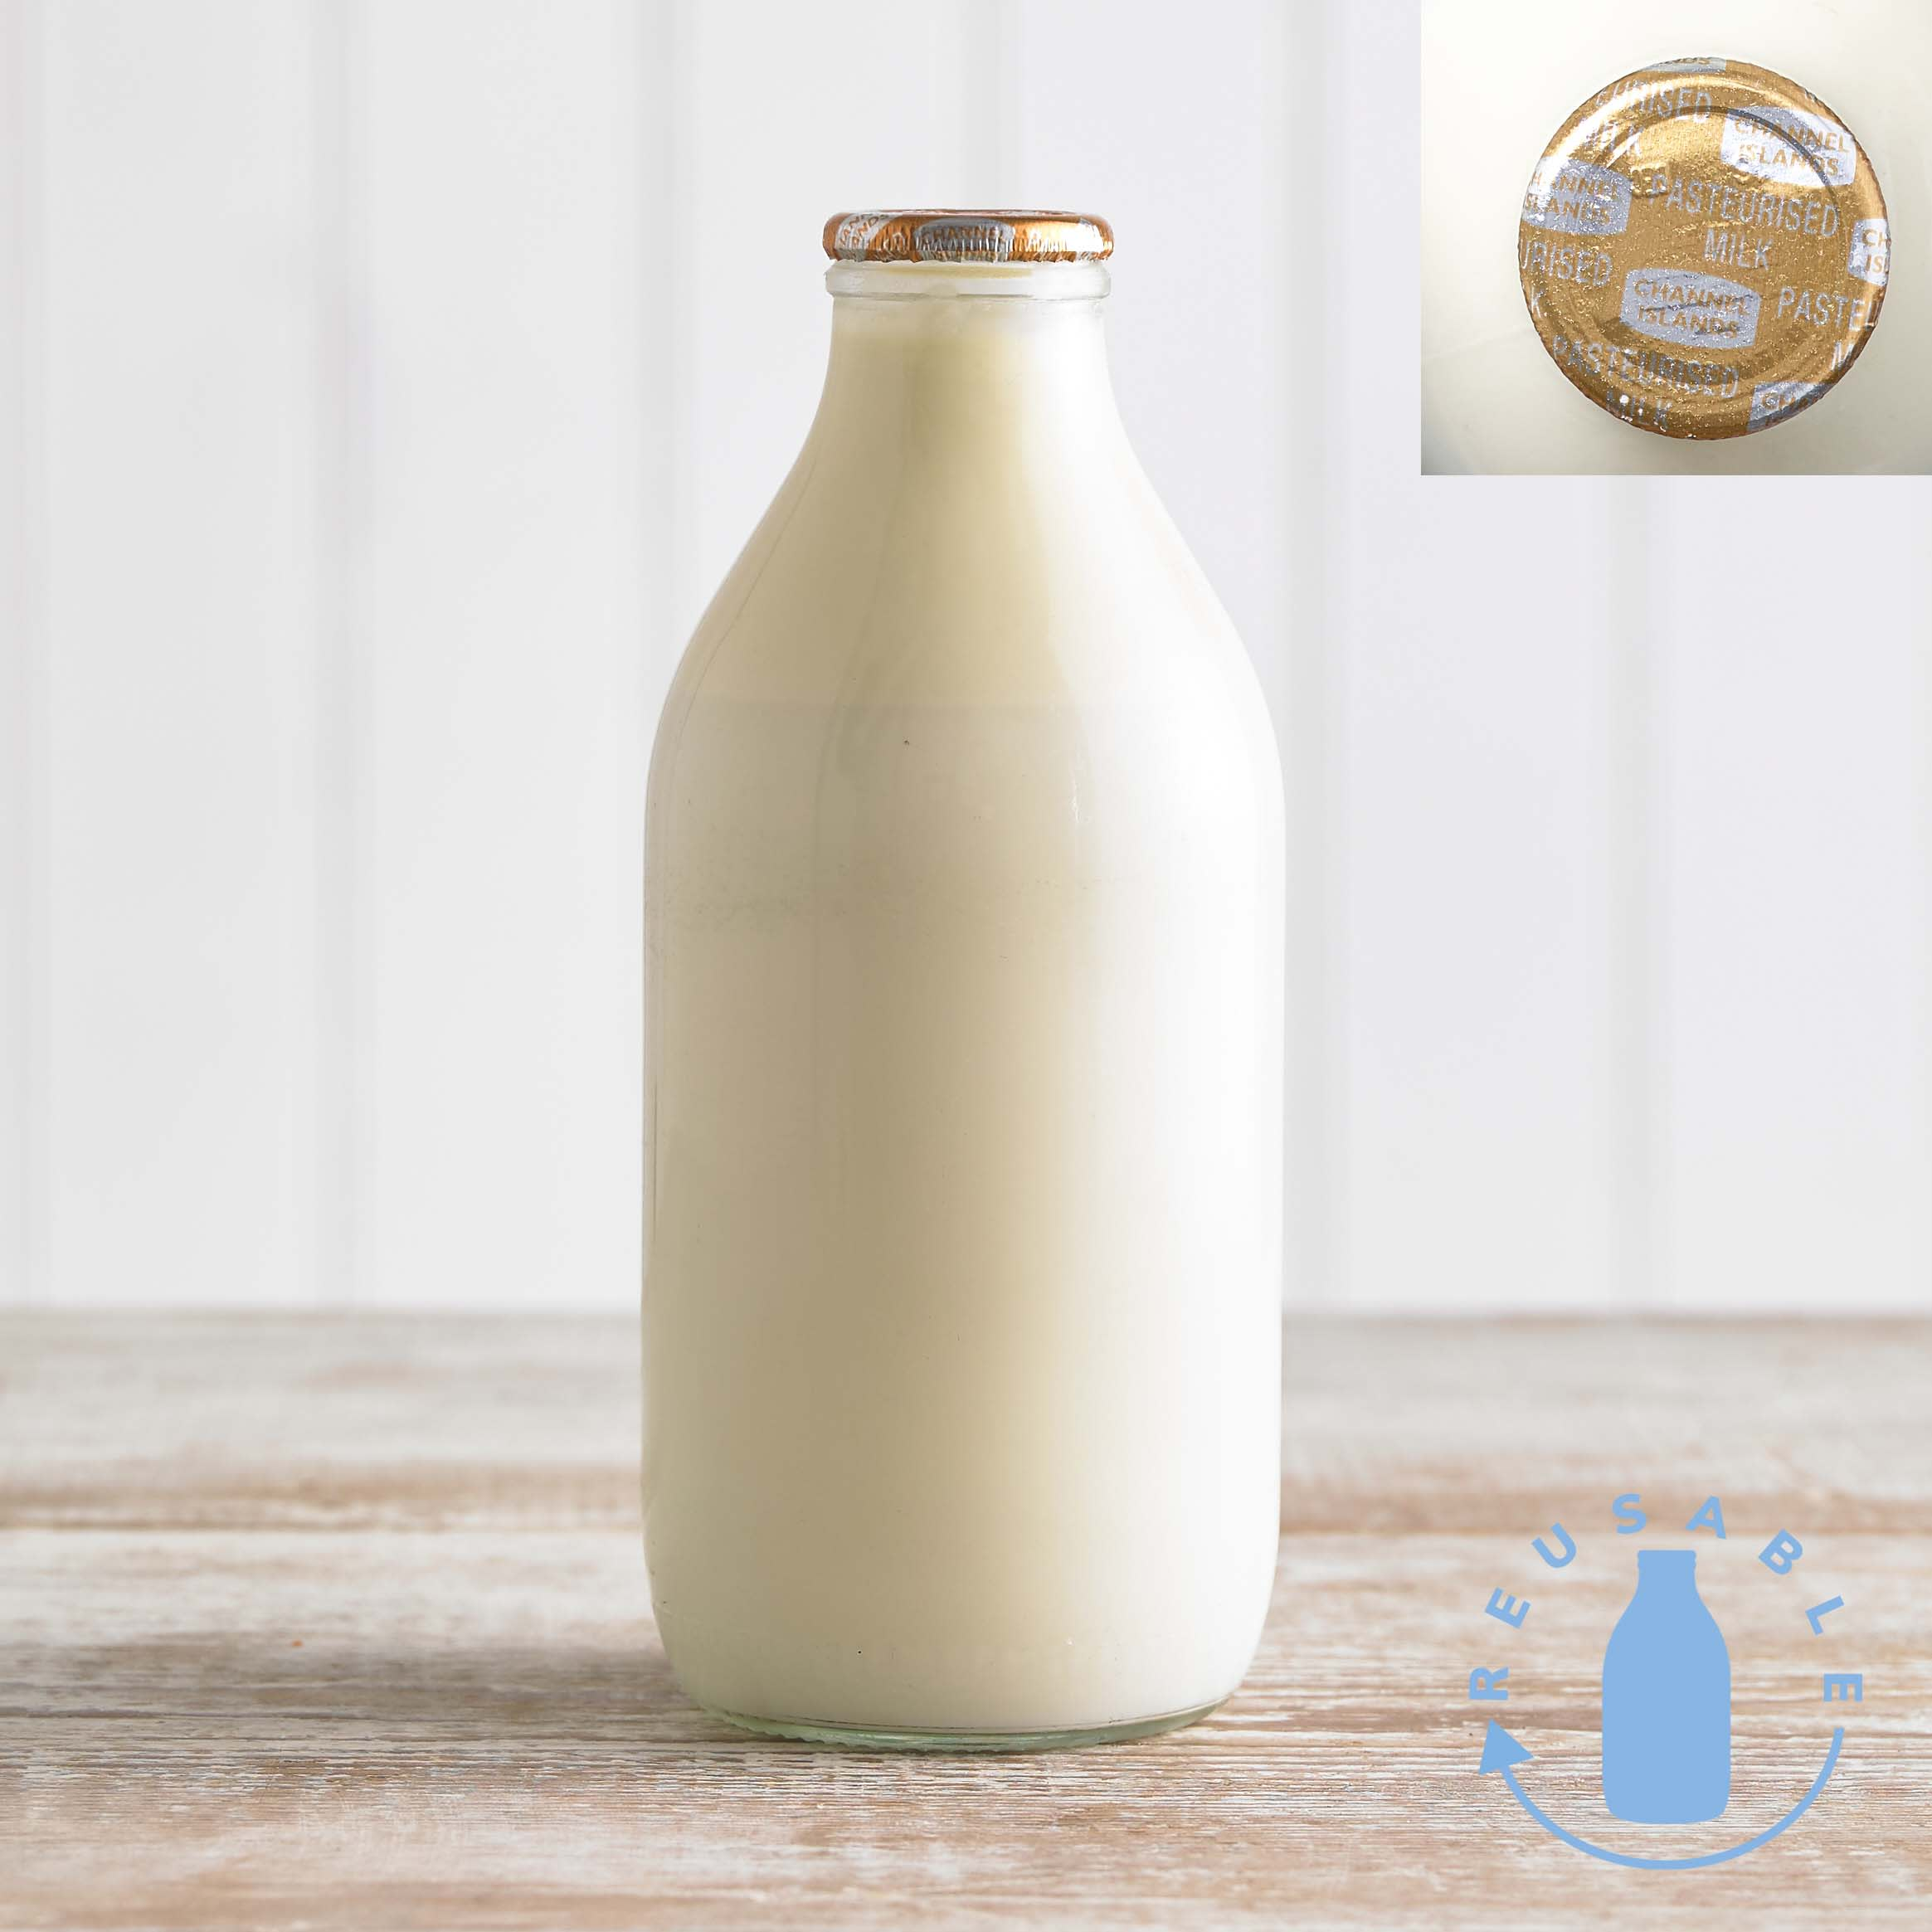 Channel Island Gold Foil Milk in Glass, 568ml, 1pt